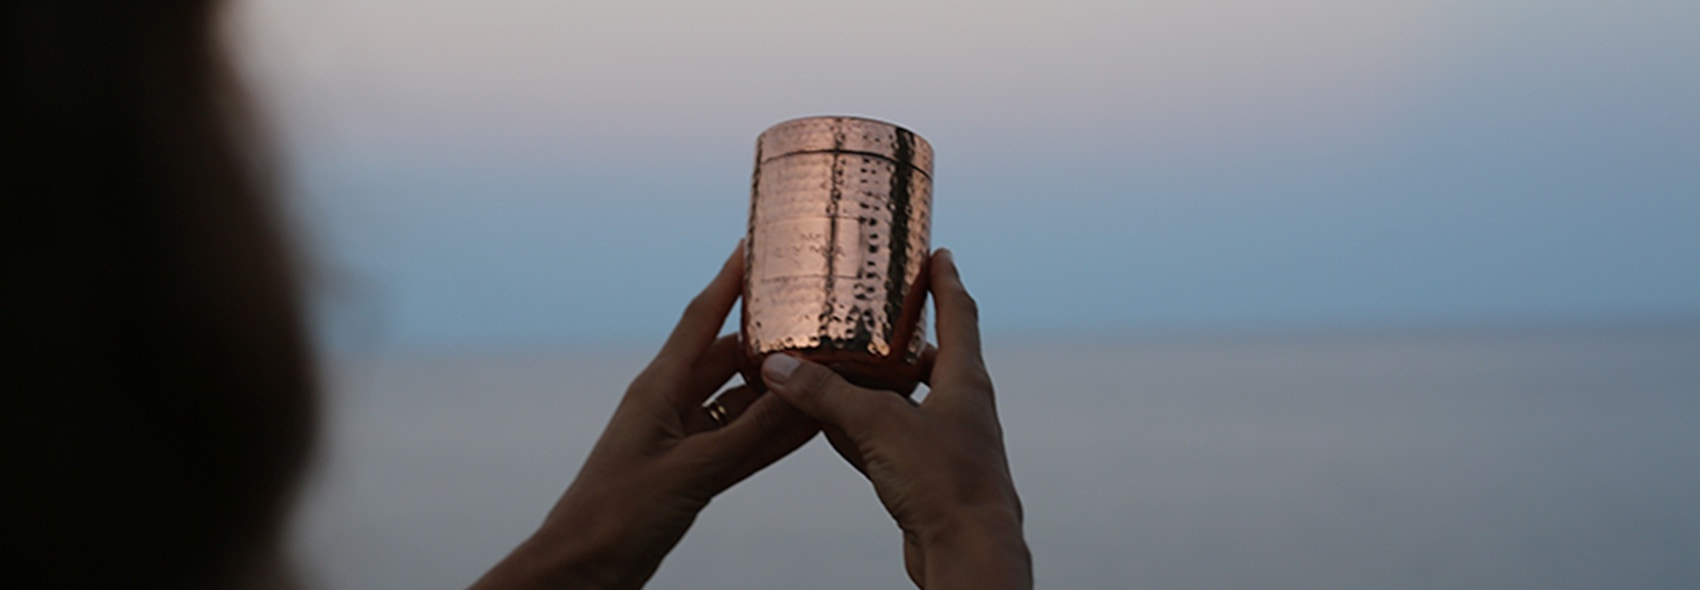 TWO HANDS HOLDING VESSEL